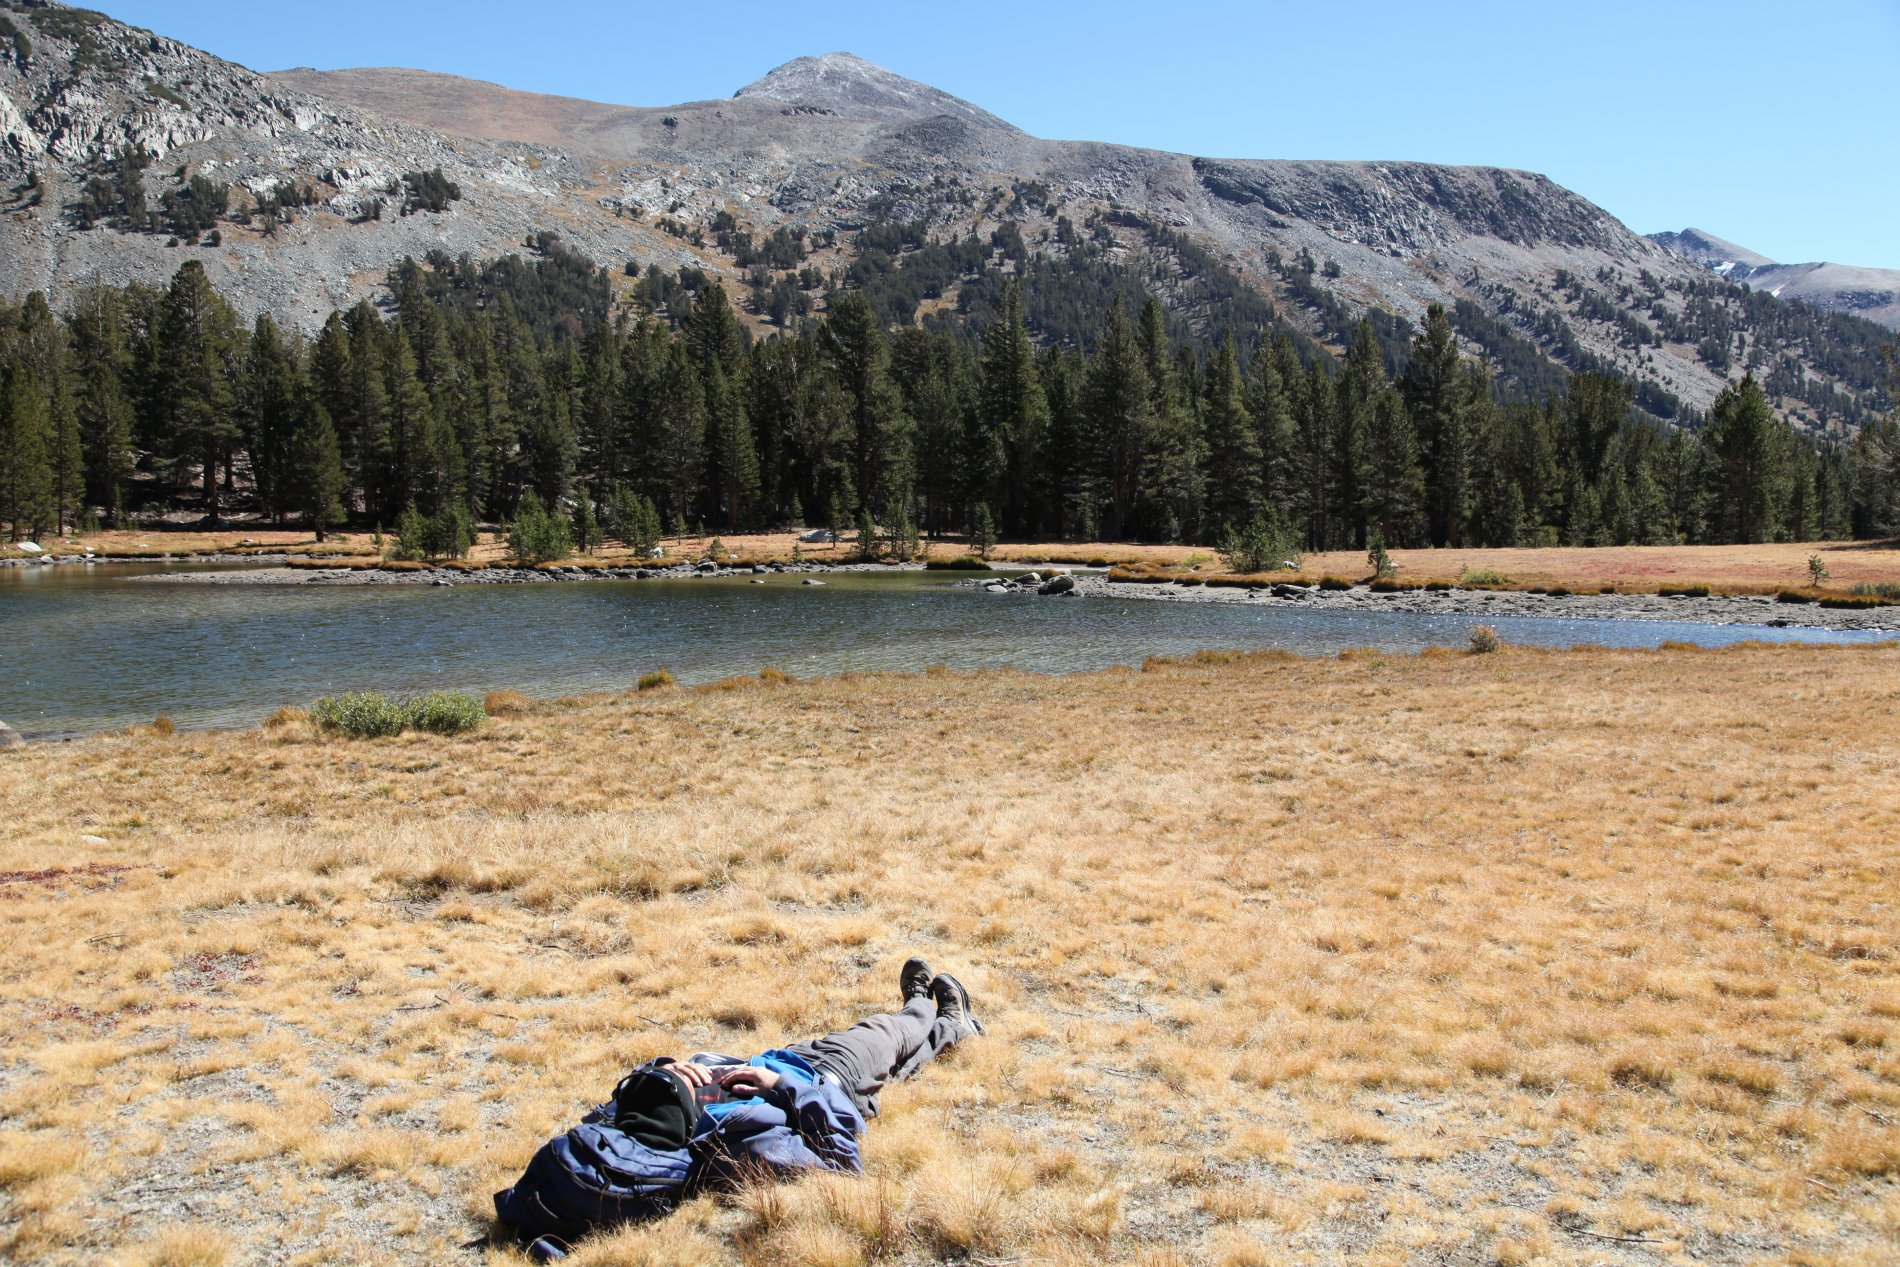 IMG_1255.JPG: Mountain climb dream, Tioga Pass